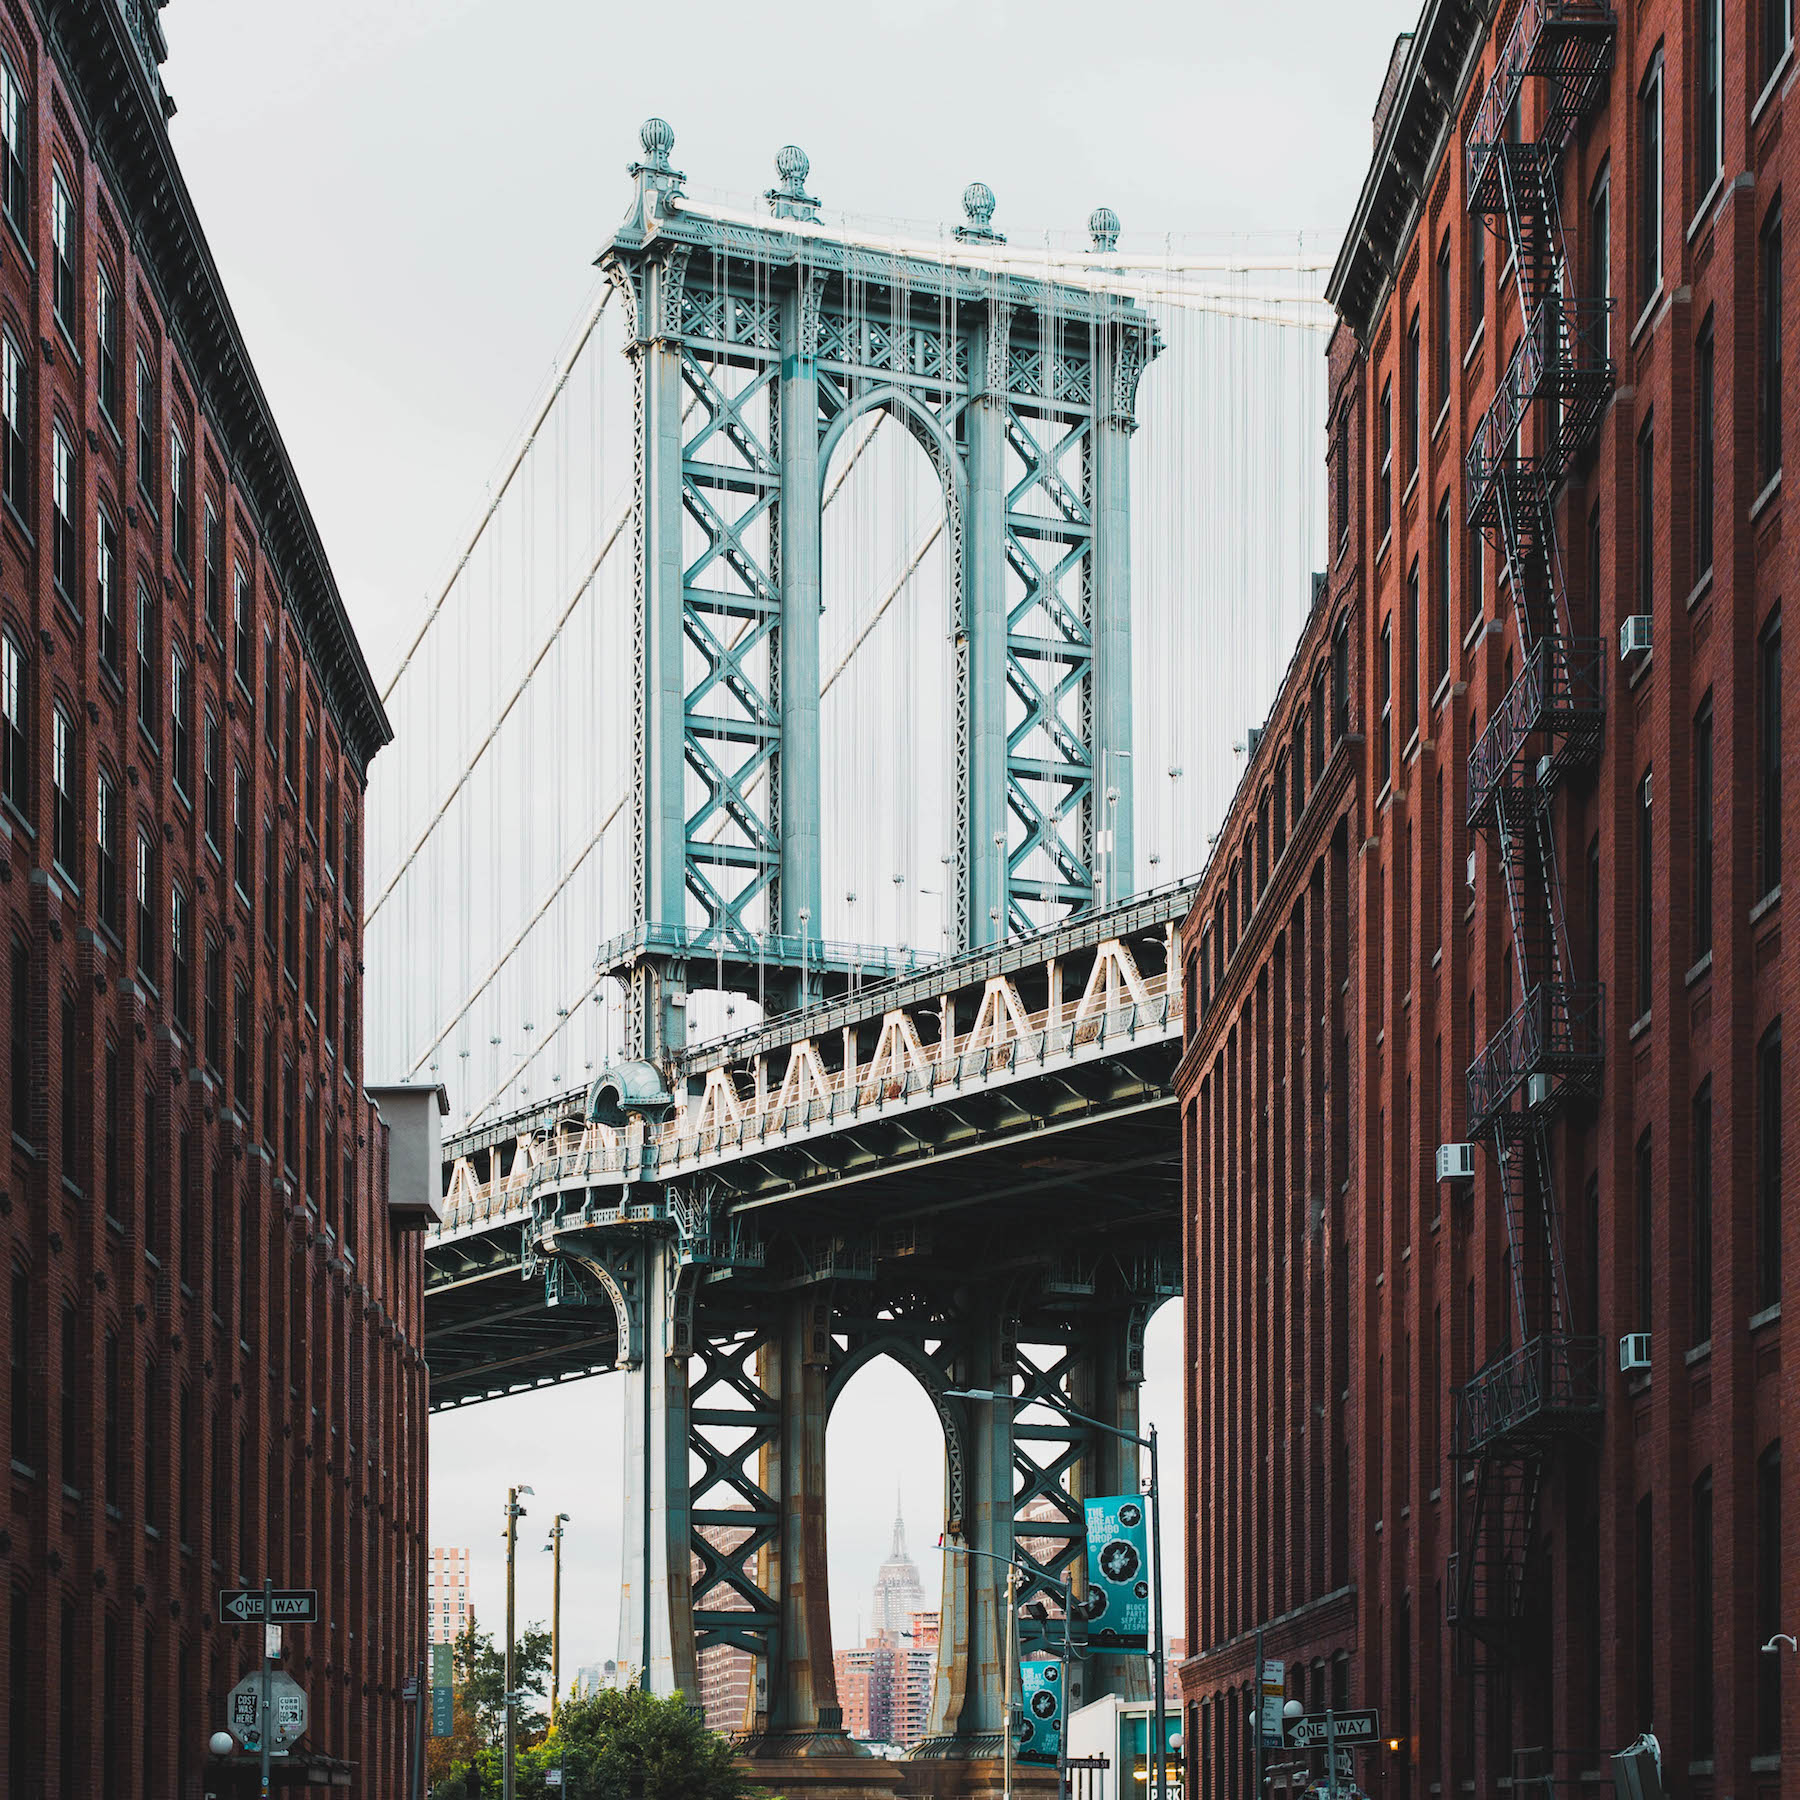 New York Reise suelovesnyc_new_york_reise_unsplash_dumbo